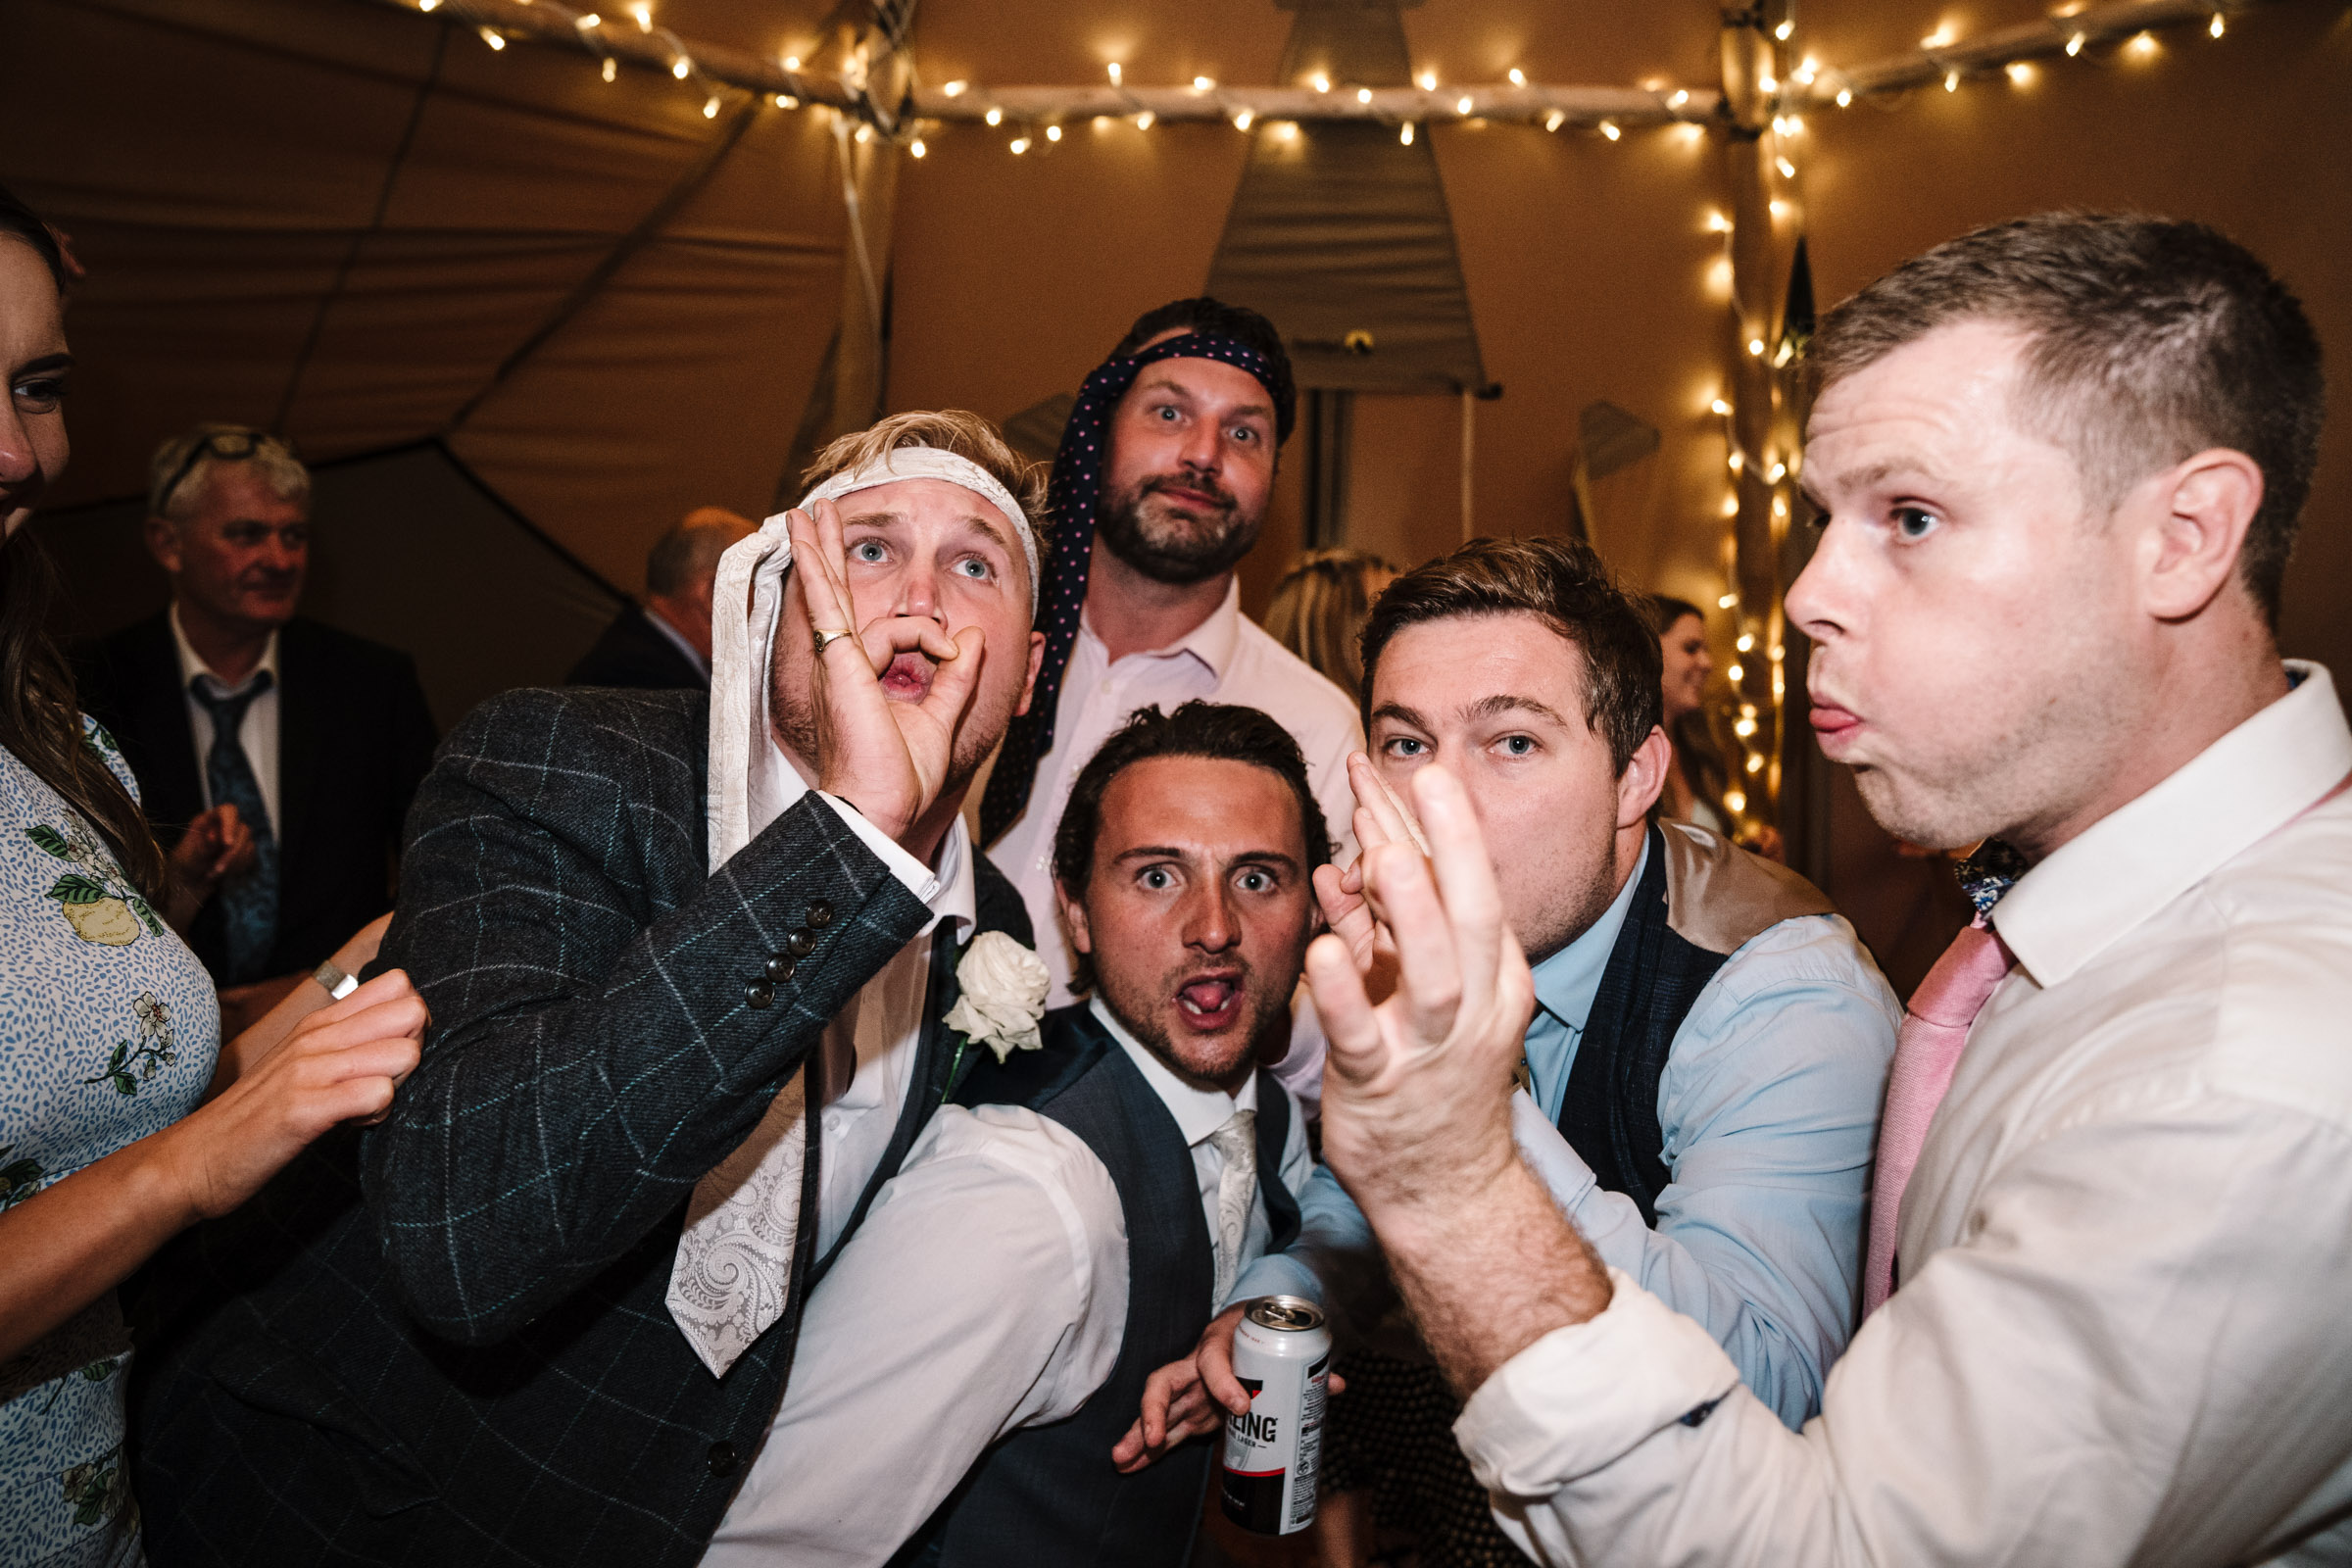 guests dancing at wedding with ties round their heads